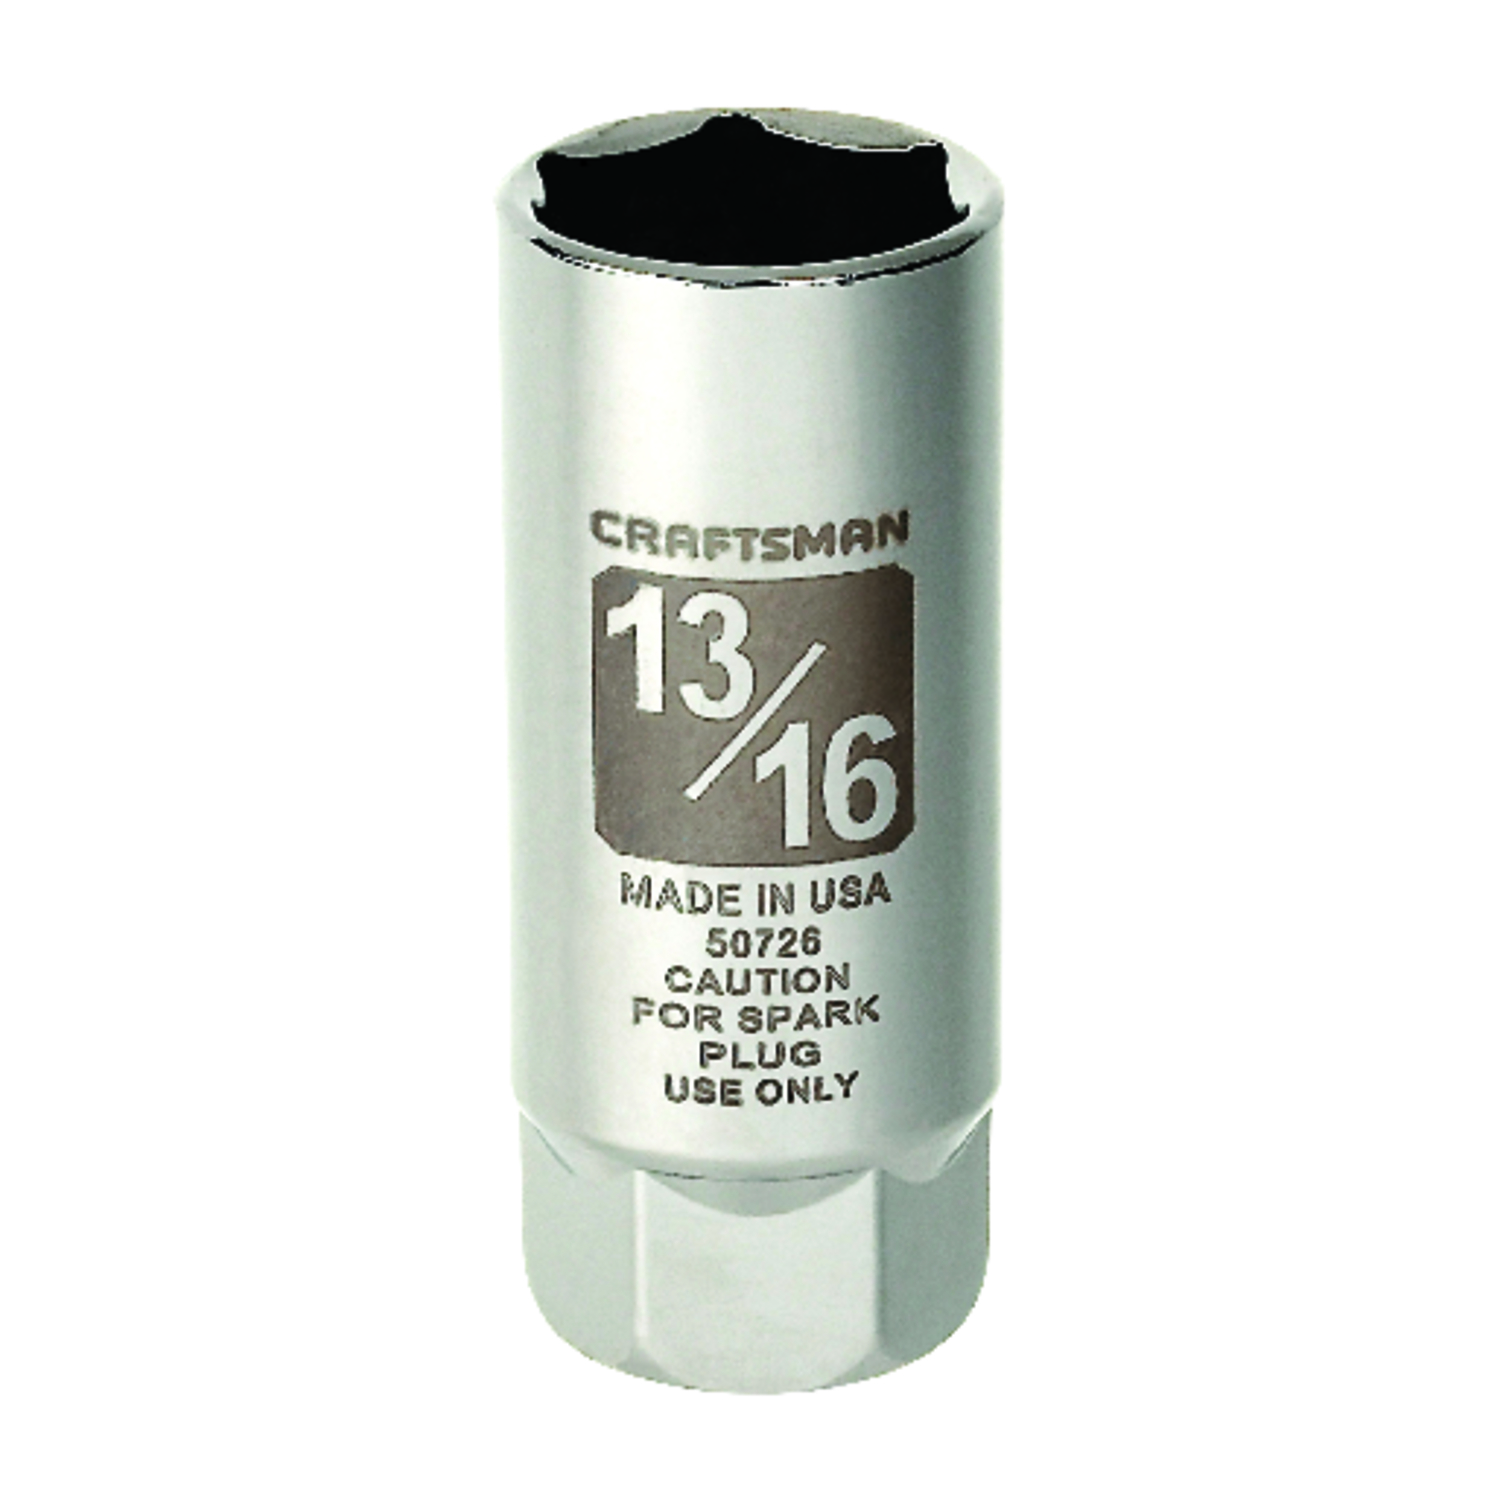 Craftsman  13/16 in.  x 3/8 in. drive  SAE  6 Point Spark Plug Socket  1 pc.